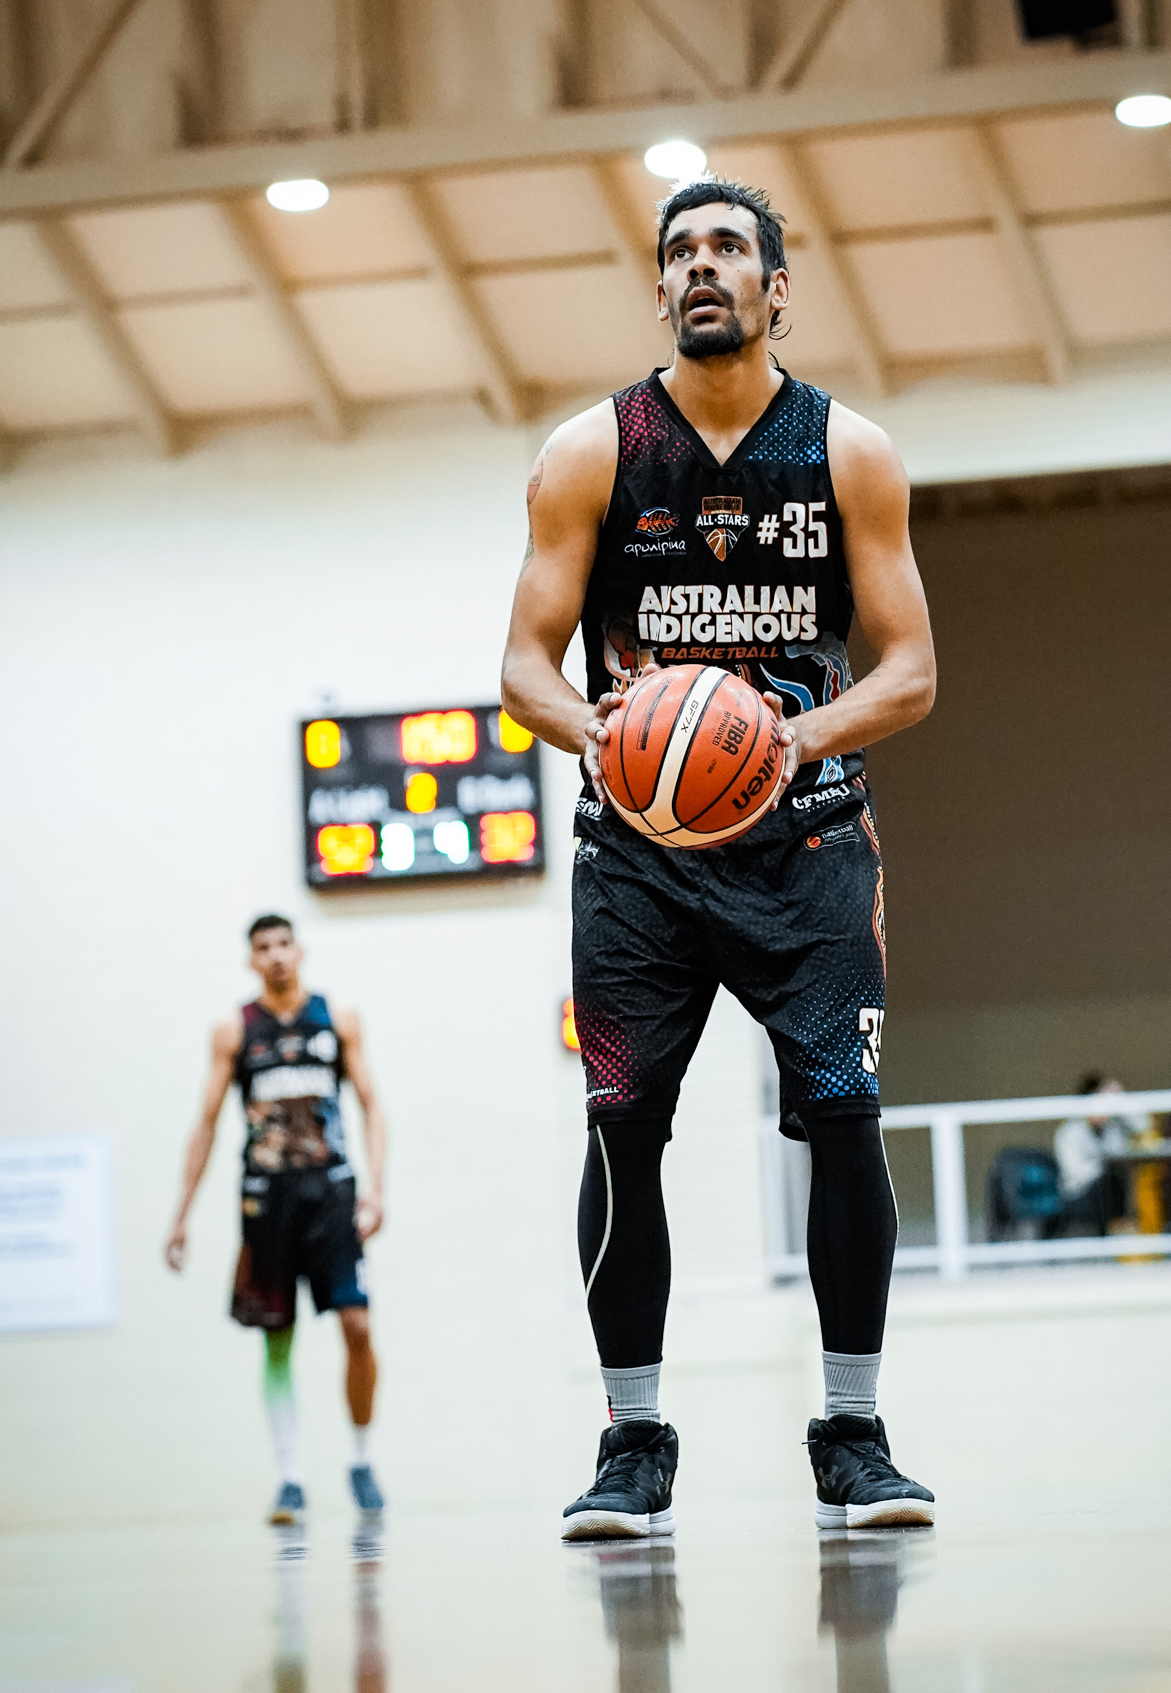 #35 Dion Patten in action for the All Stars last year. Picture: Adekponya